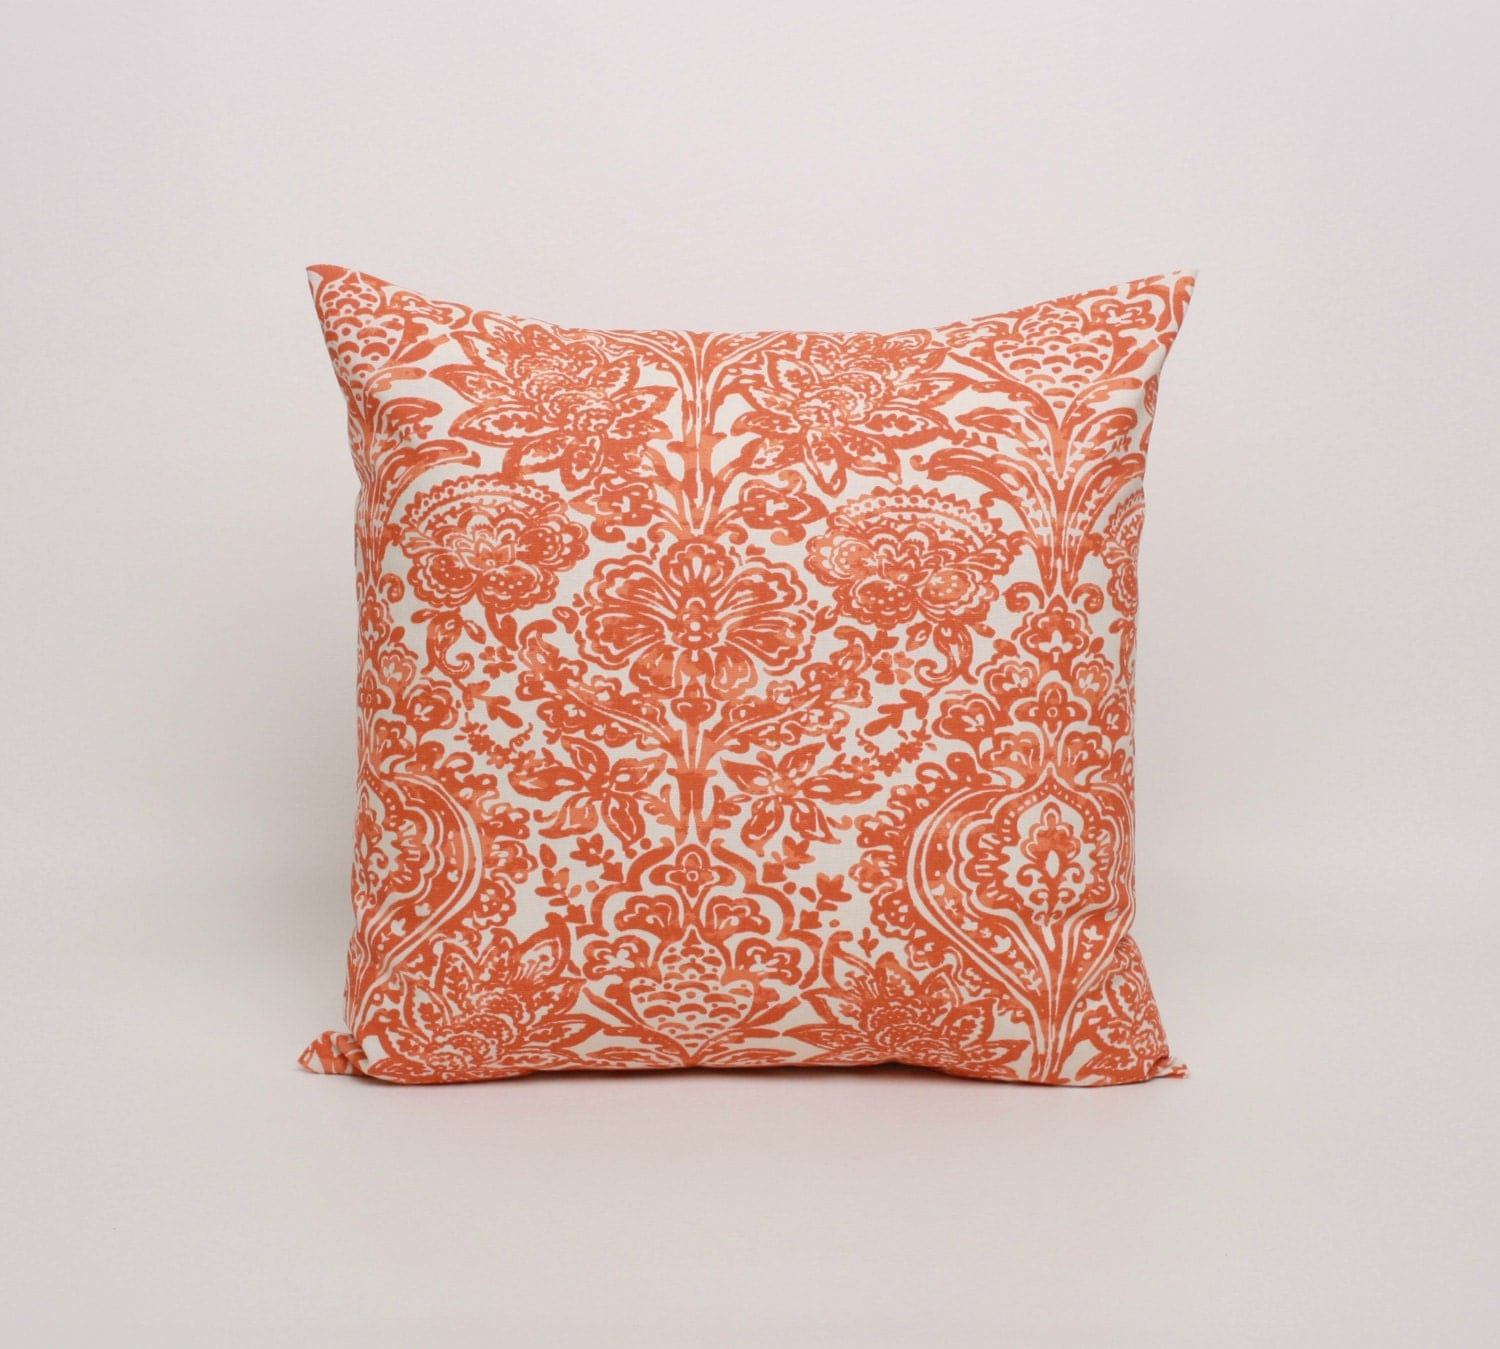 Throw Pillows With Orange : Orange Pillow Cover Orange Cushion Cover 20x20 Throw Pillow